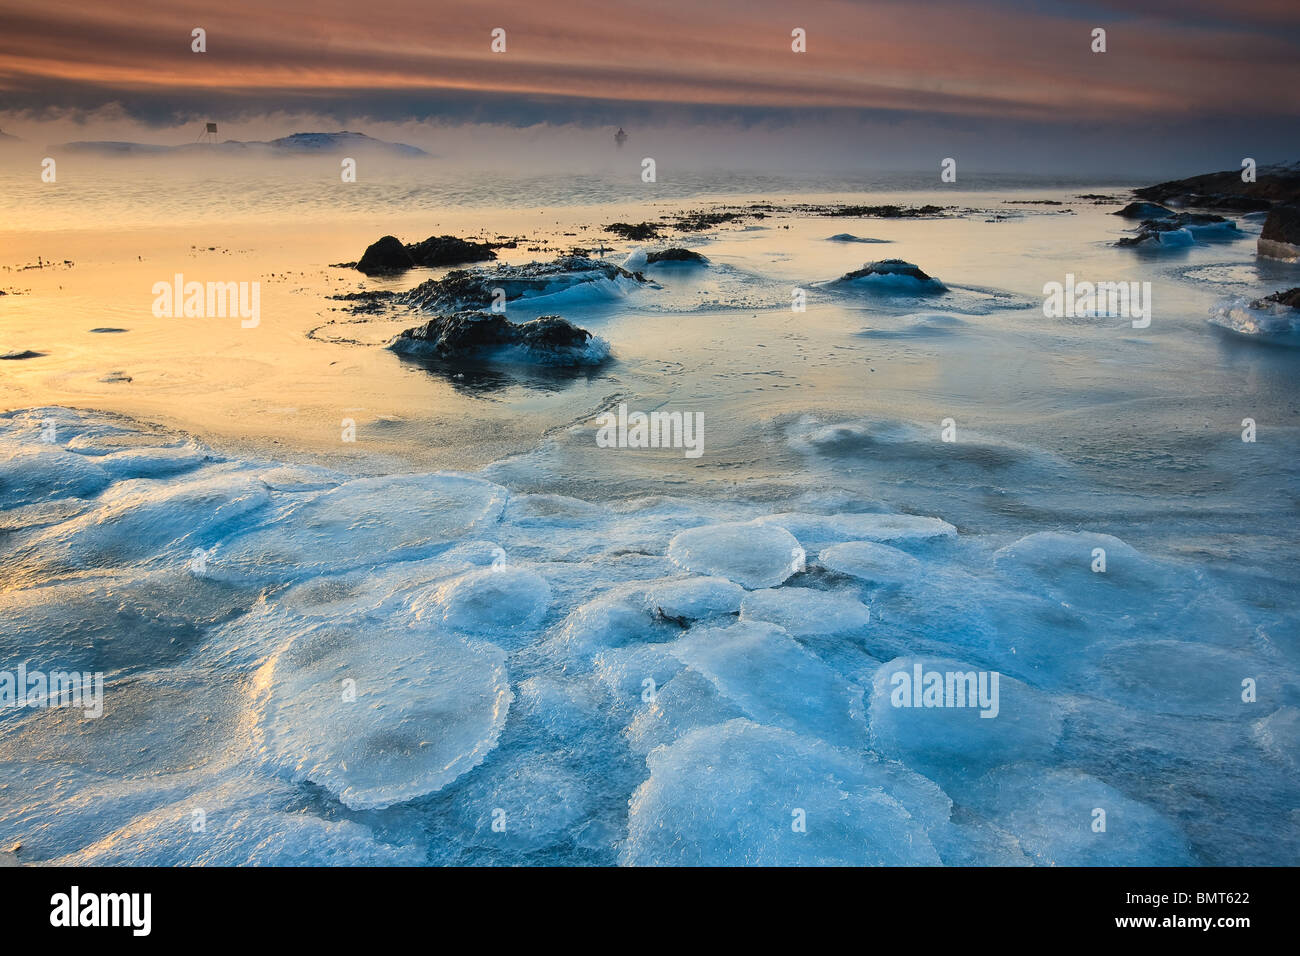 Icy landscape at Larkollen in Rygge kommune, Østfold fylke, Norway. - Stock Image